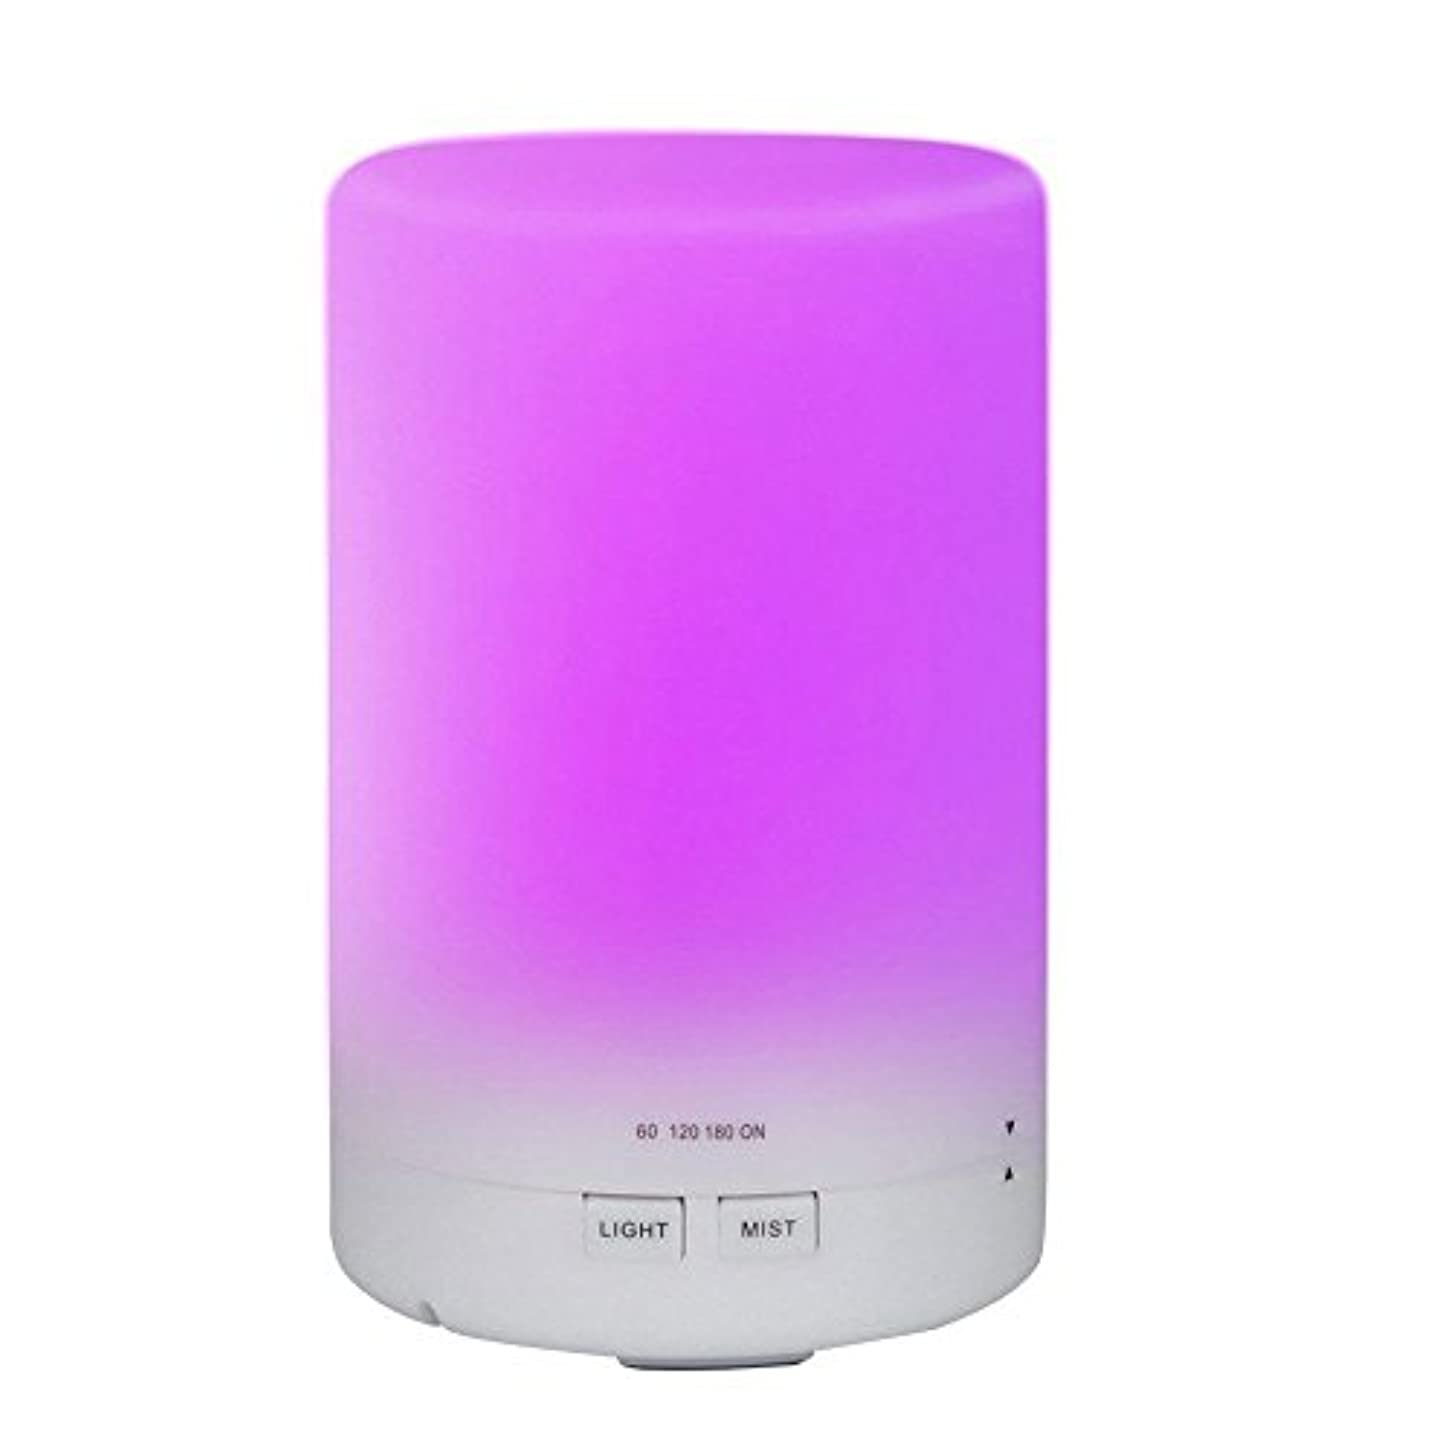 huirui Essential Oil Diffuser 300 mlアロマCool Mist超音波加湿器アロマセラピーDiffusers with 7色の変更LEDライトタイマー設定とWaterless保護(木目)...